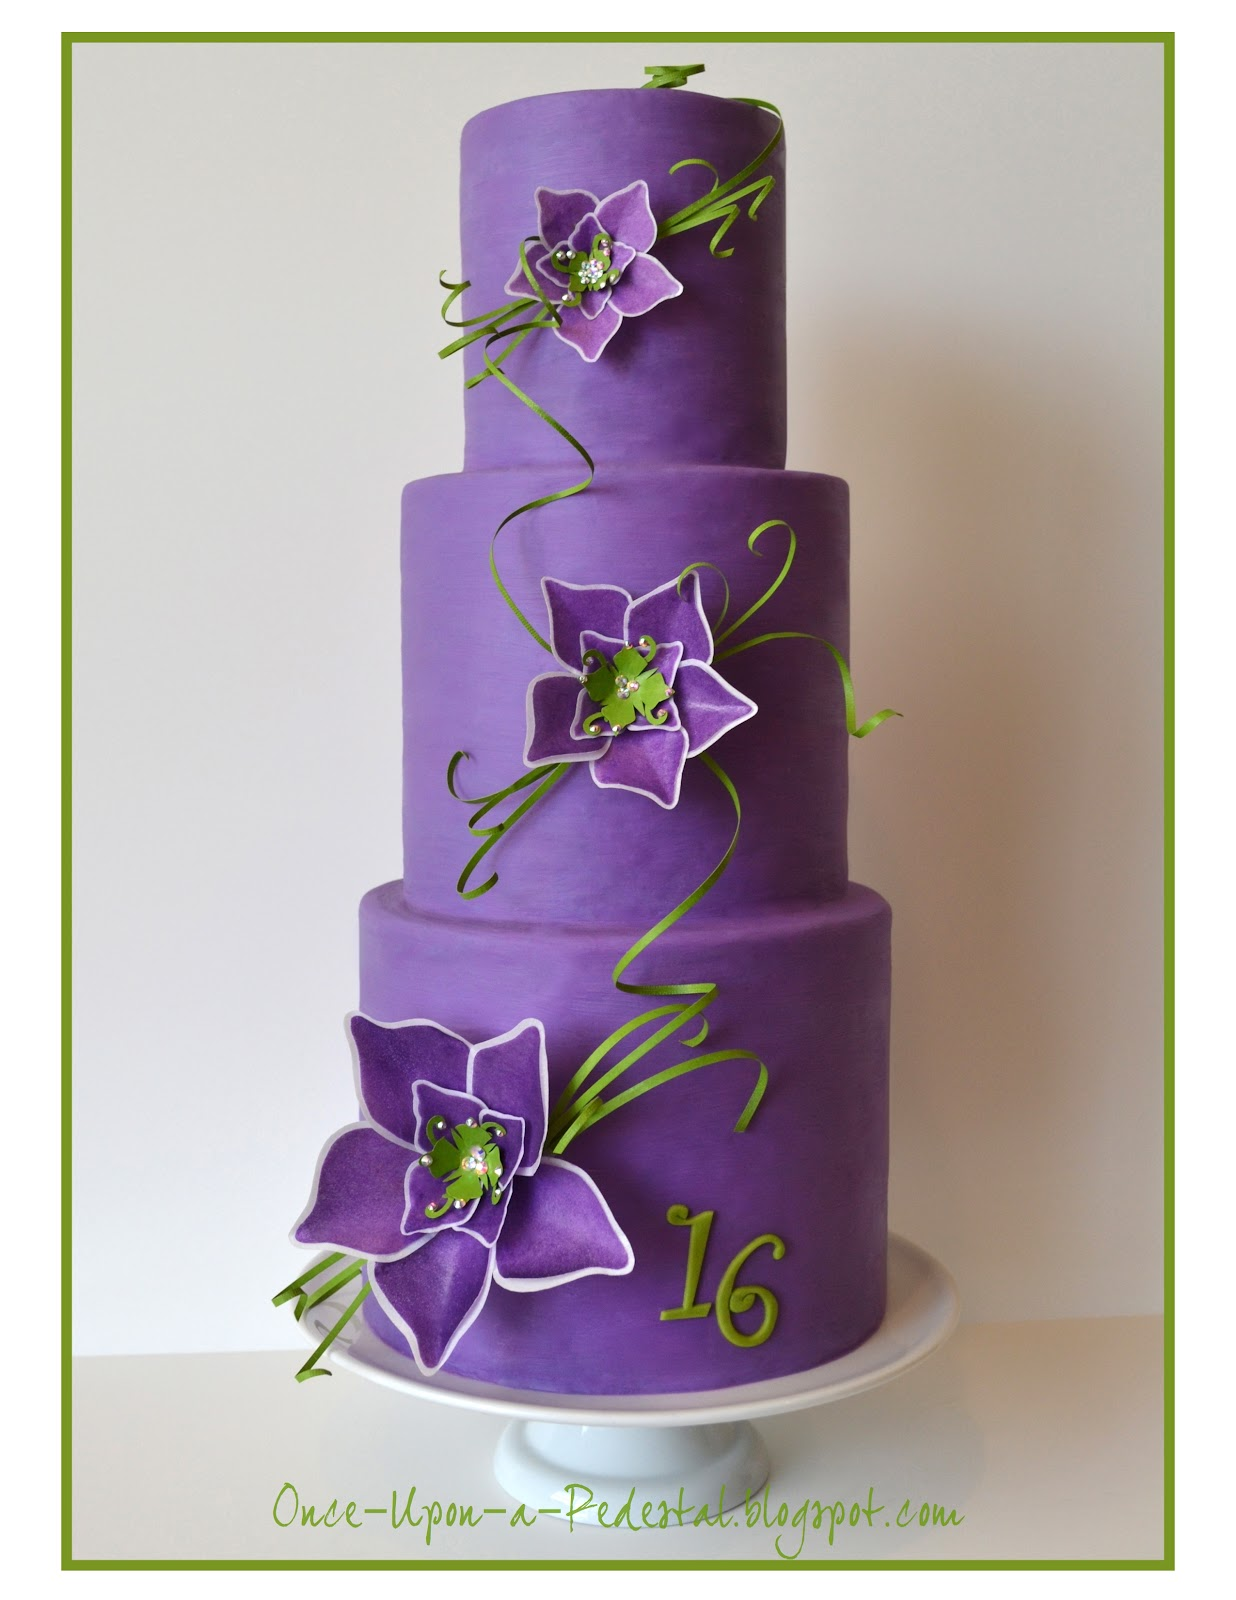 Once Upon A Pedestal: Sweet 16 Cake For Cake Central Magazine